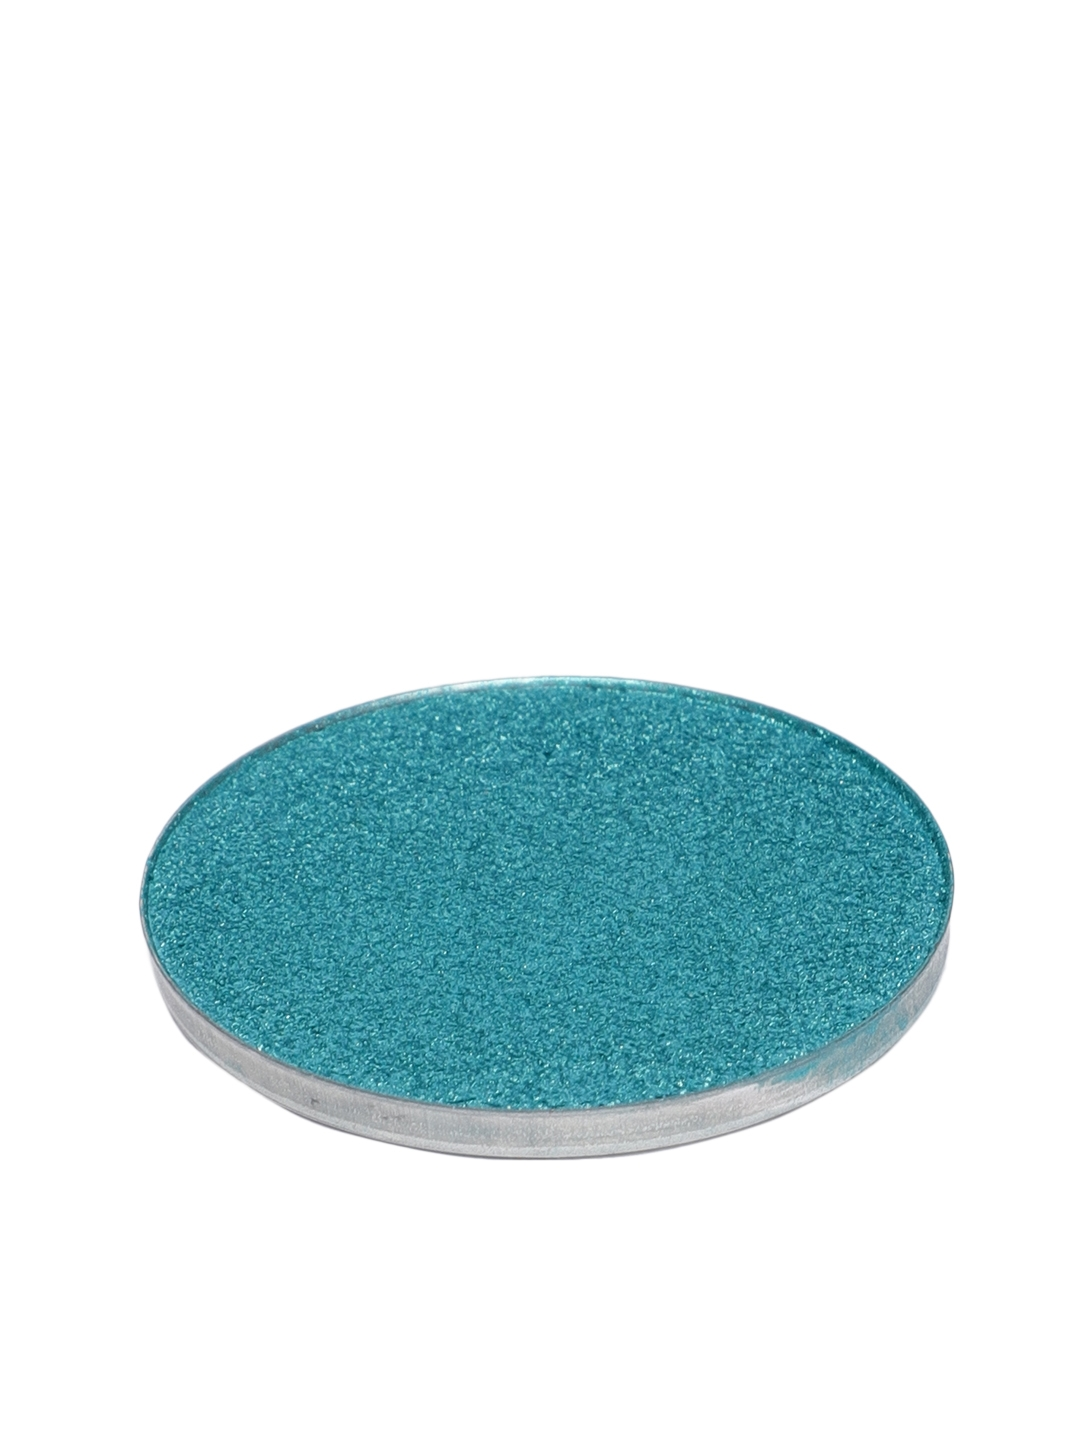 PAC 13 Ocean Wave 3D Metal Eyeshadow 3g